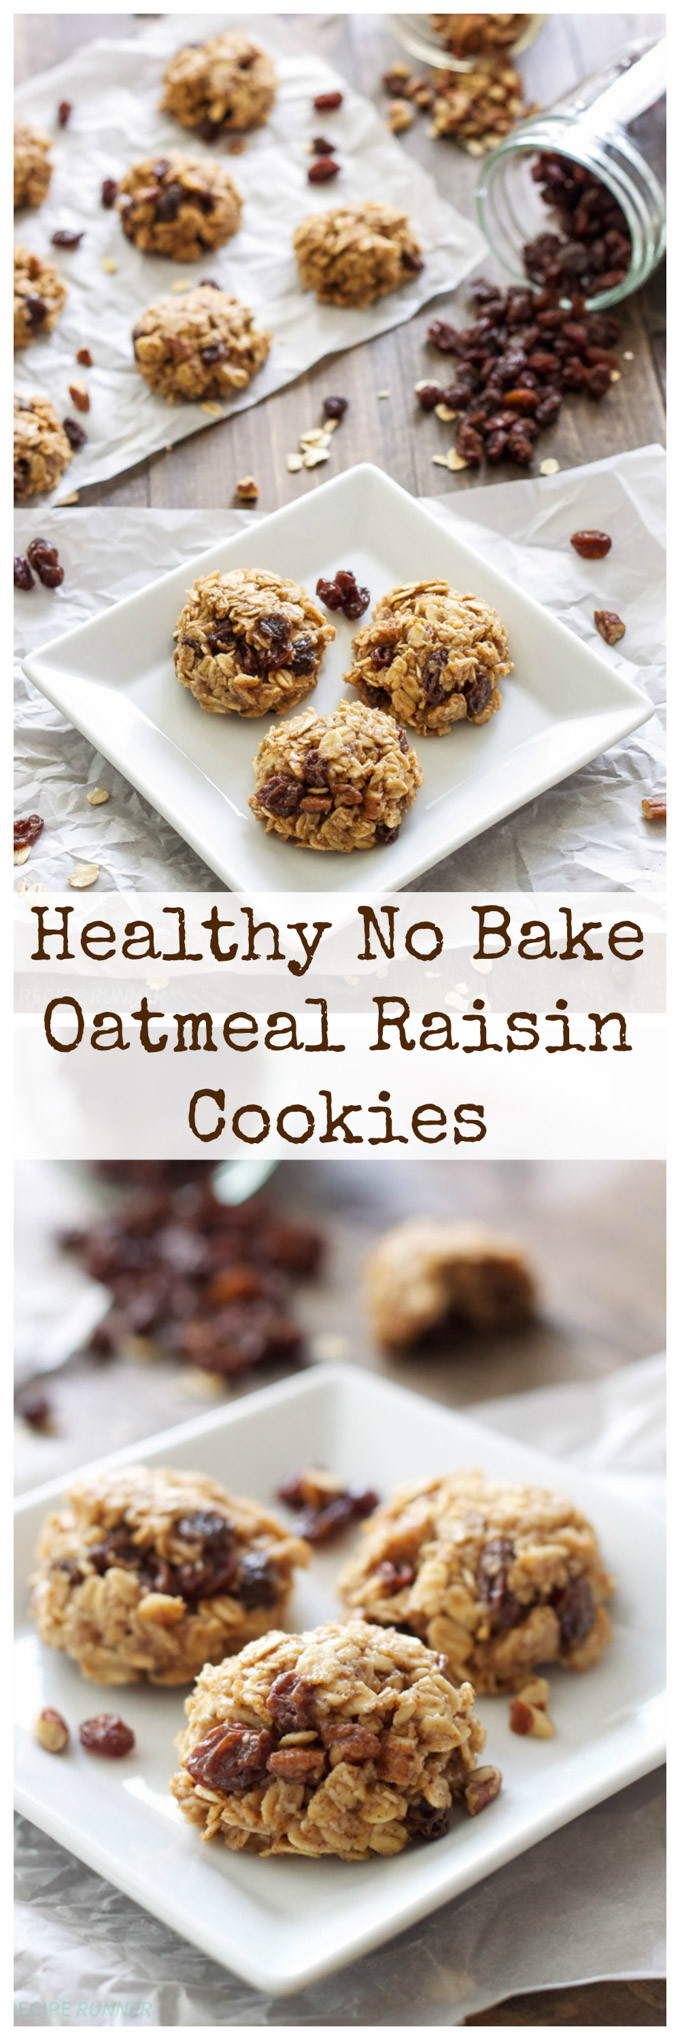 Healthy No Bake Oatmeal Cookies the Best Healthy No Bake Oatmeal Raisin Cookies Recipe Runner